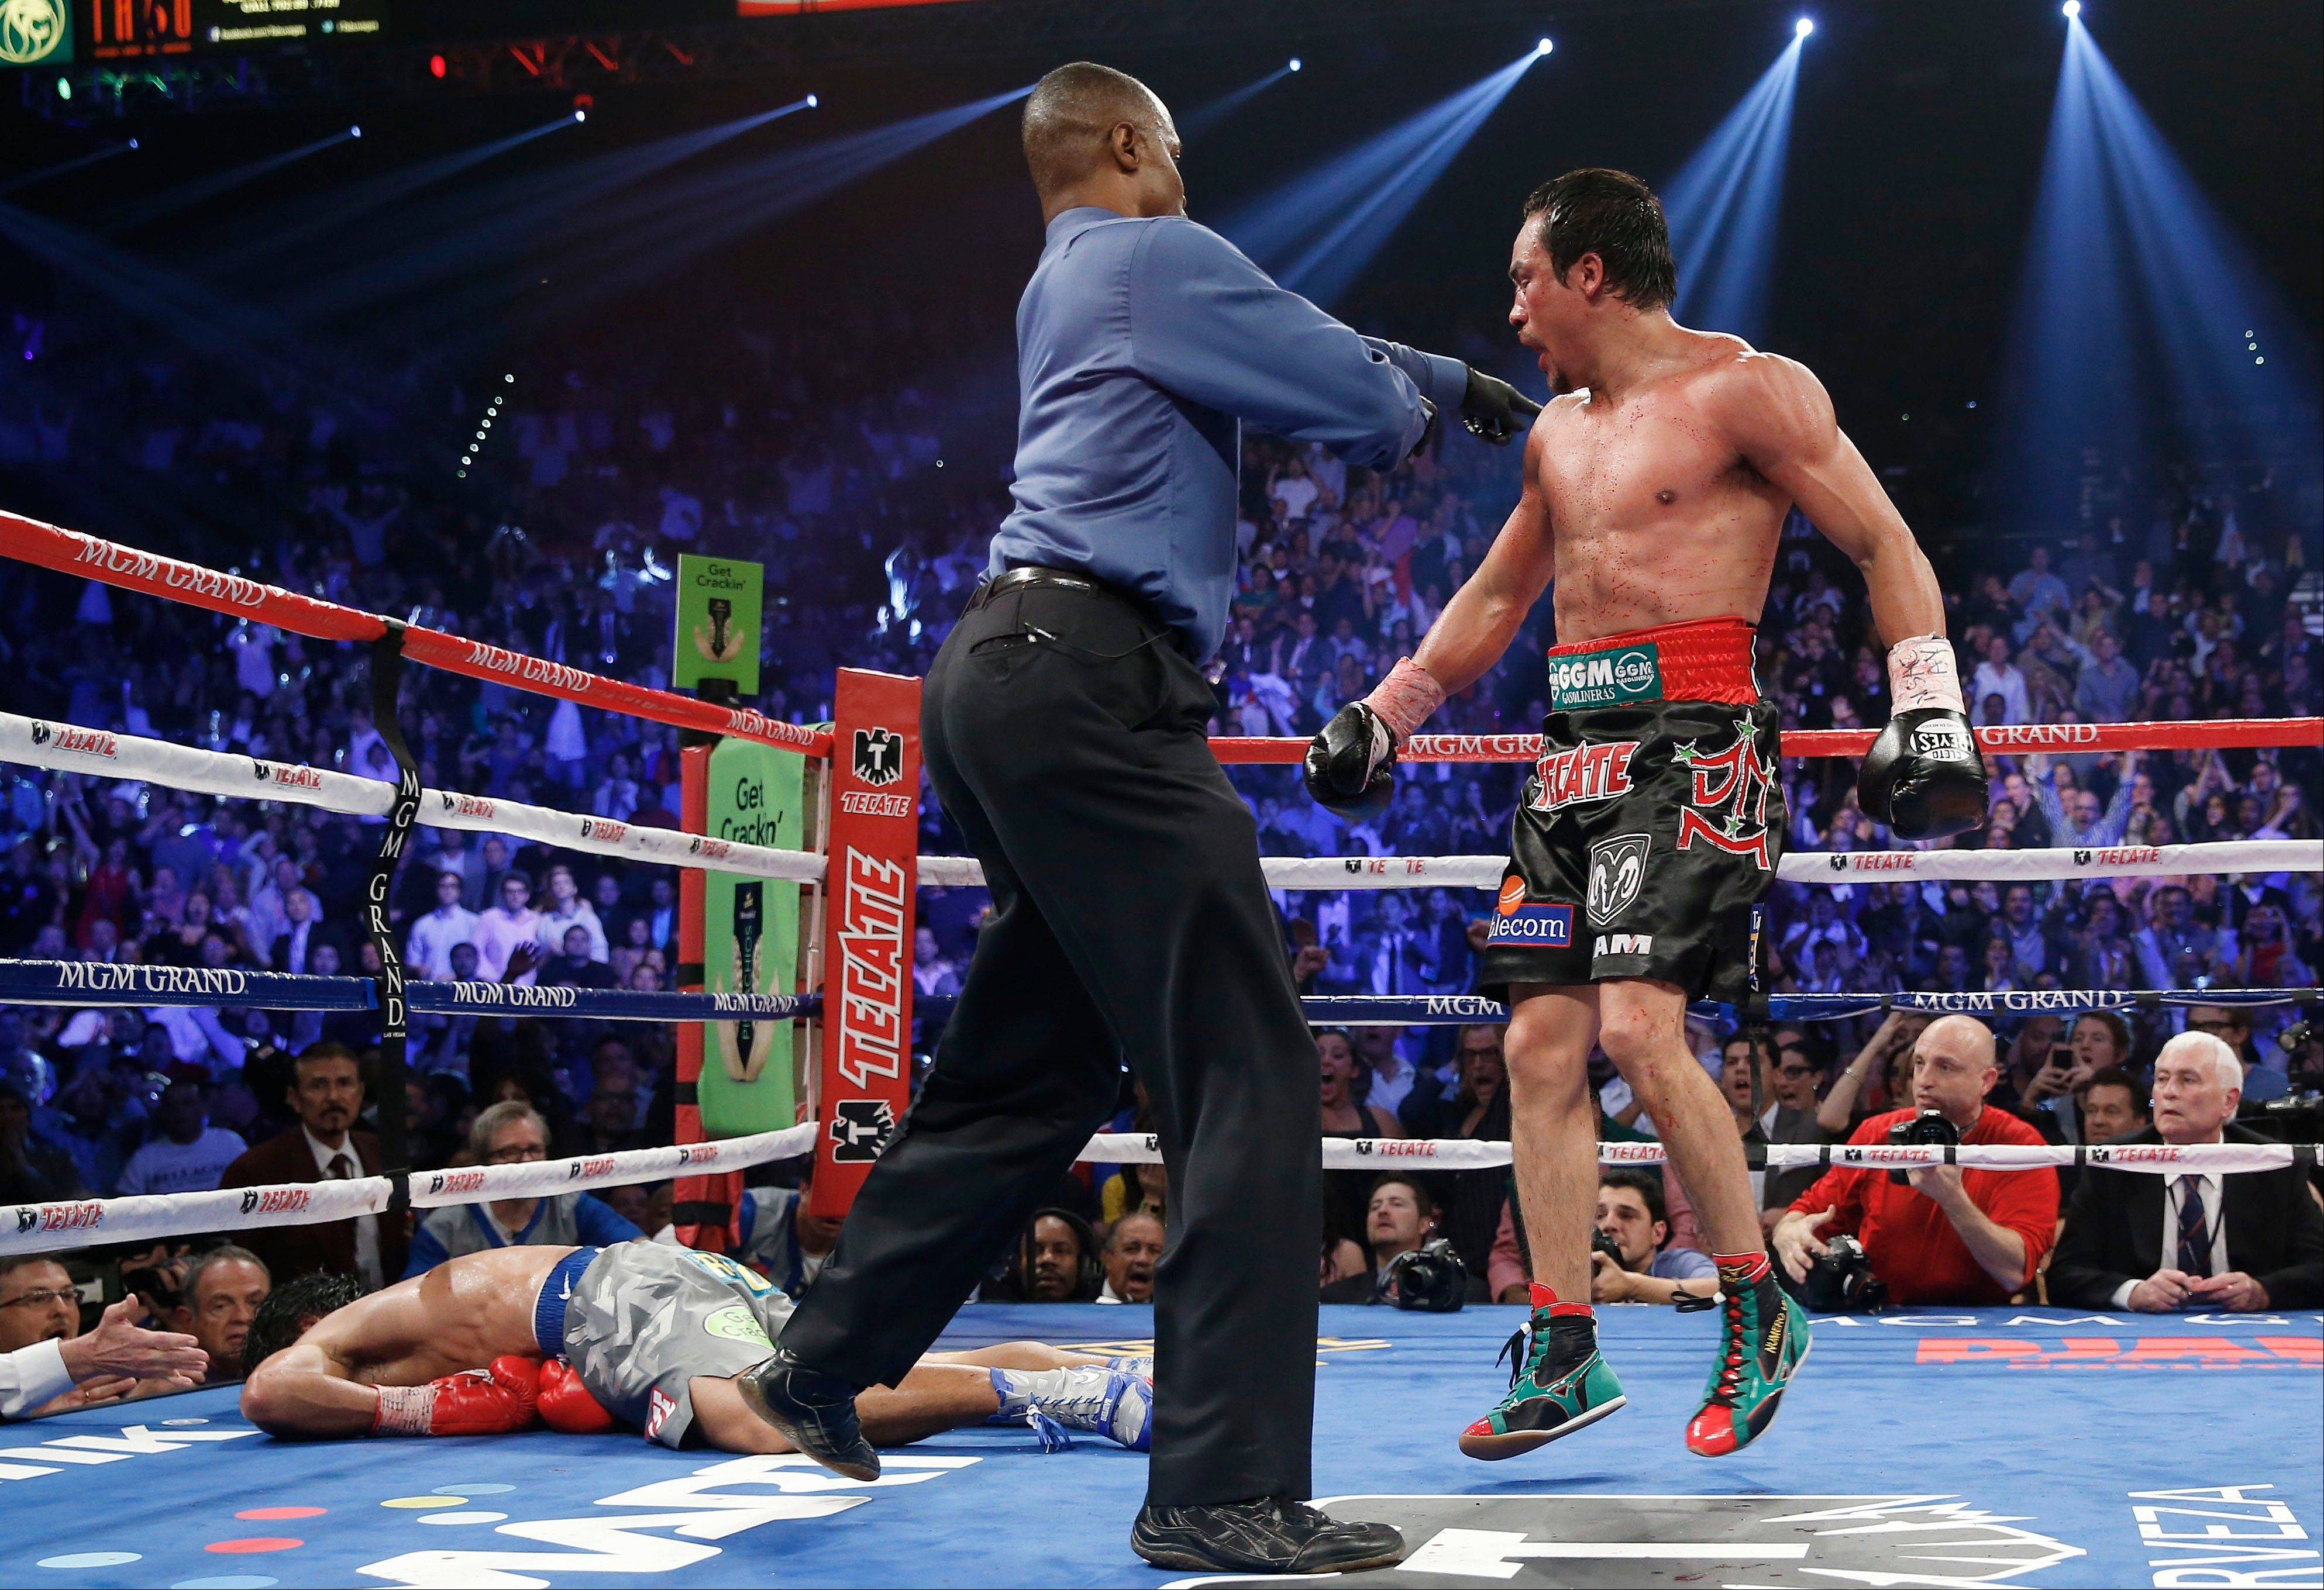 Marquez knocks Pacquiao out cold in 6th